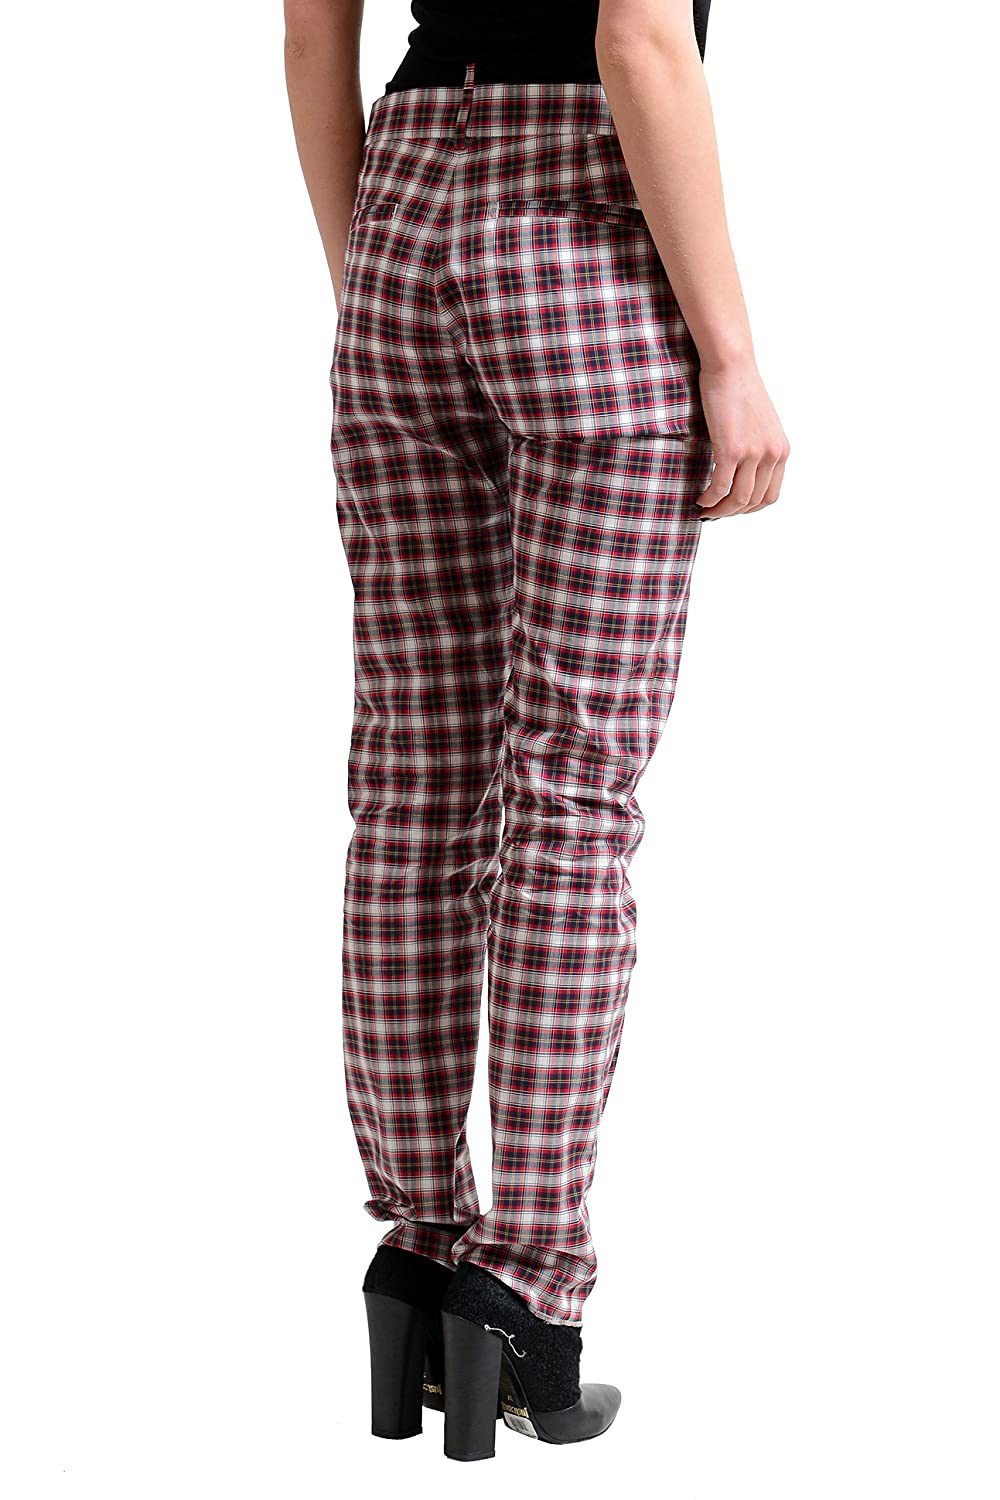 Dsquared2 Multi-Color Checkered Women's Casual Pants US 6 IT 42